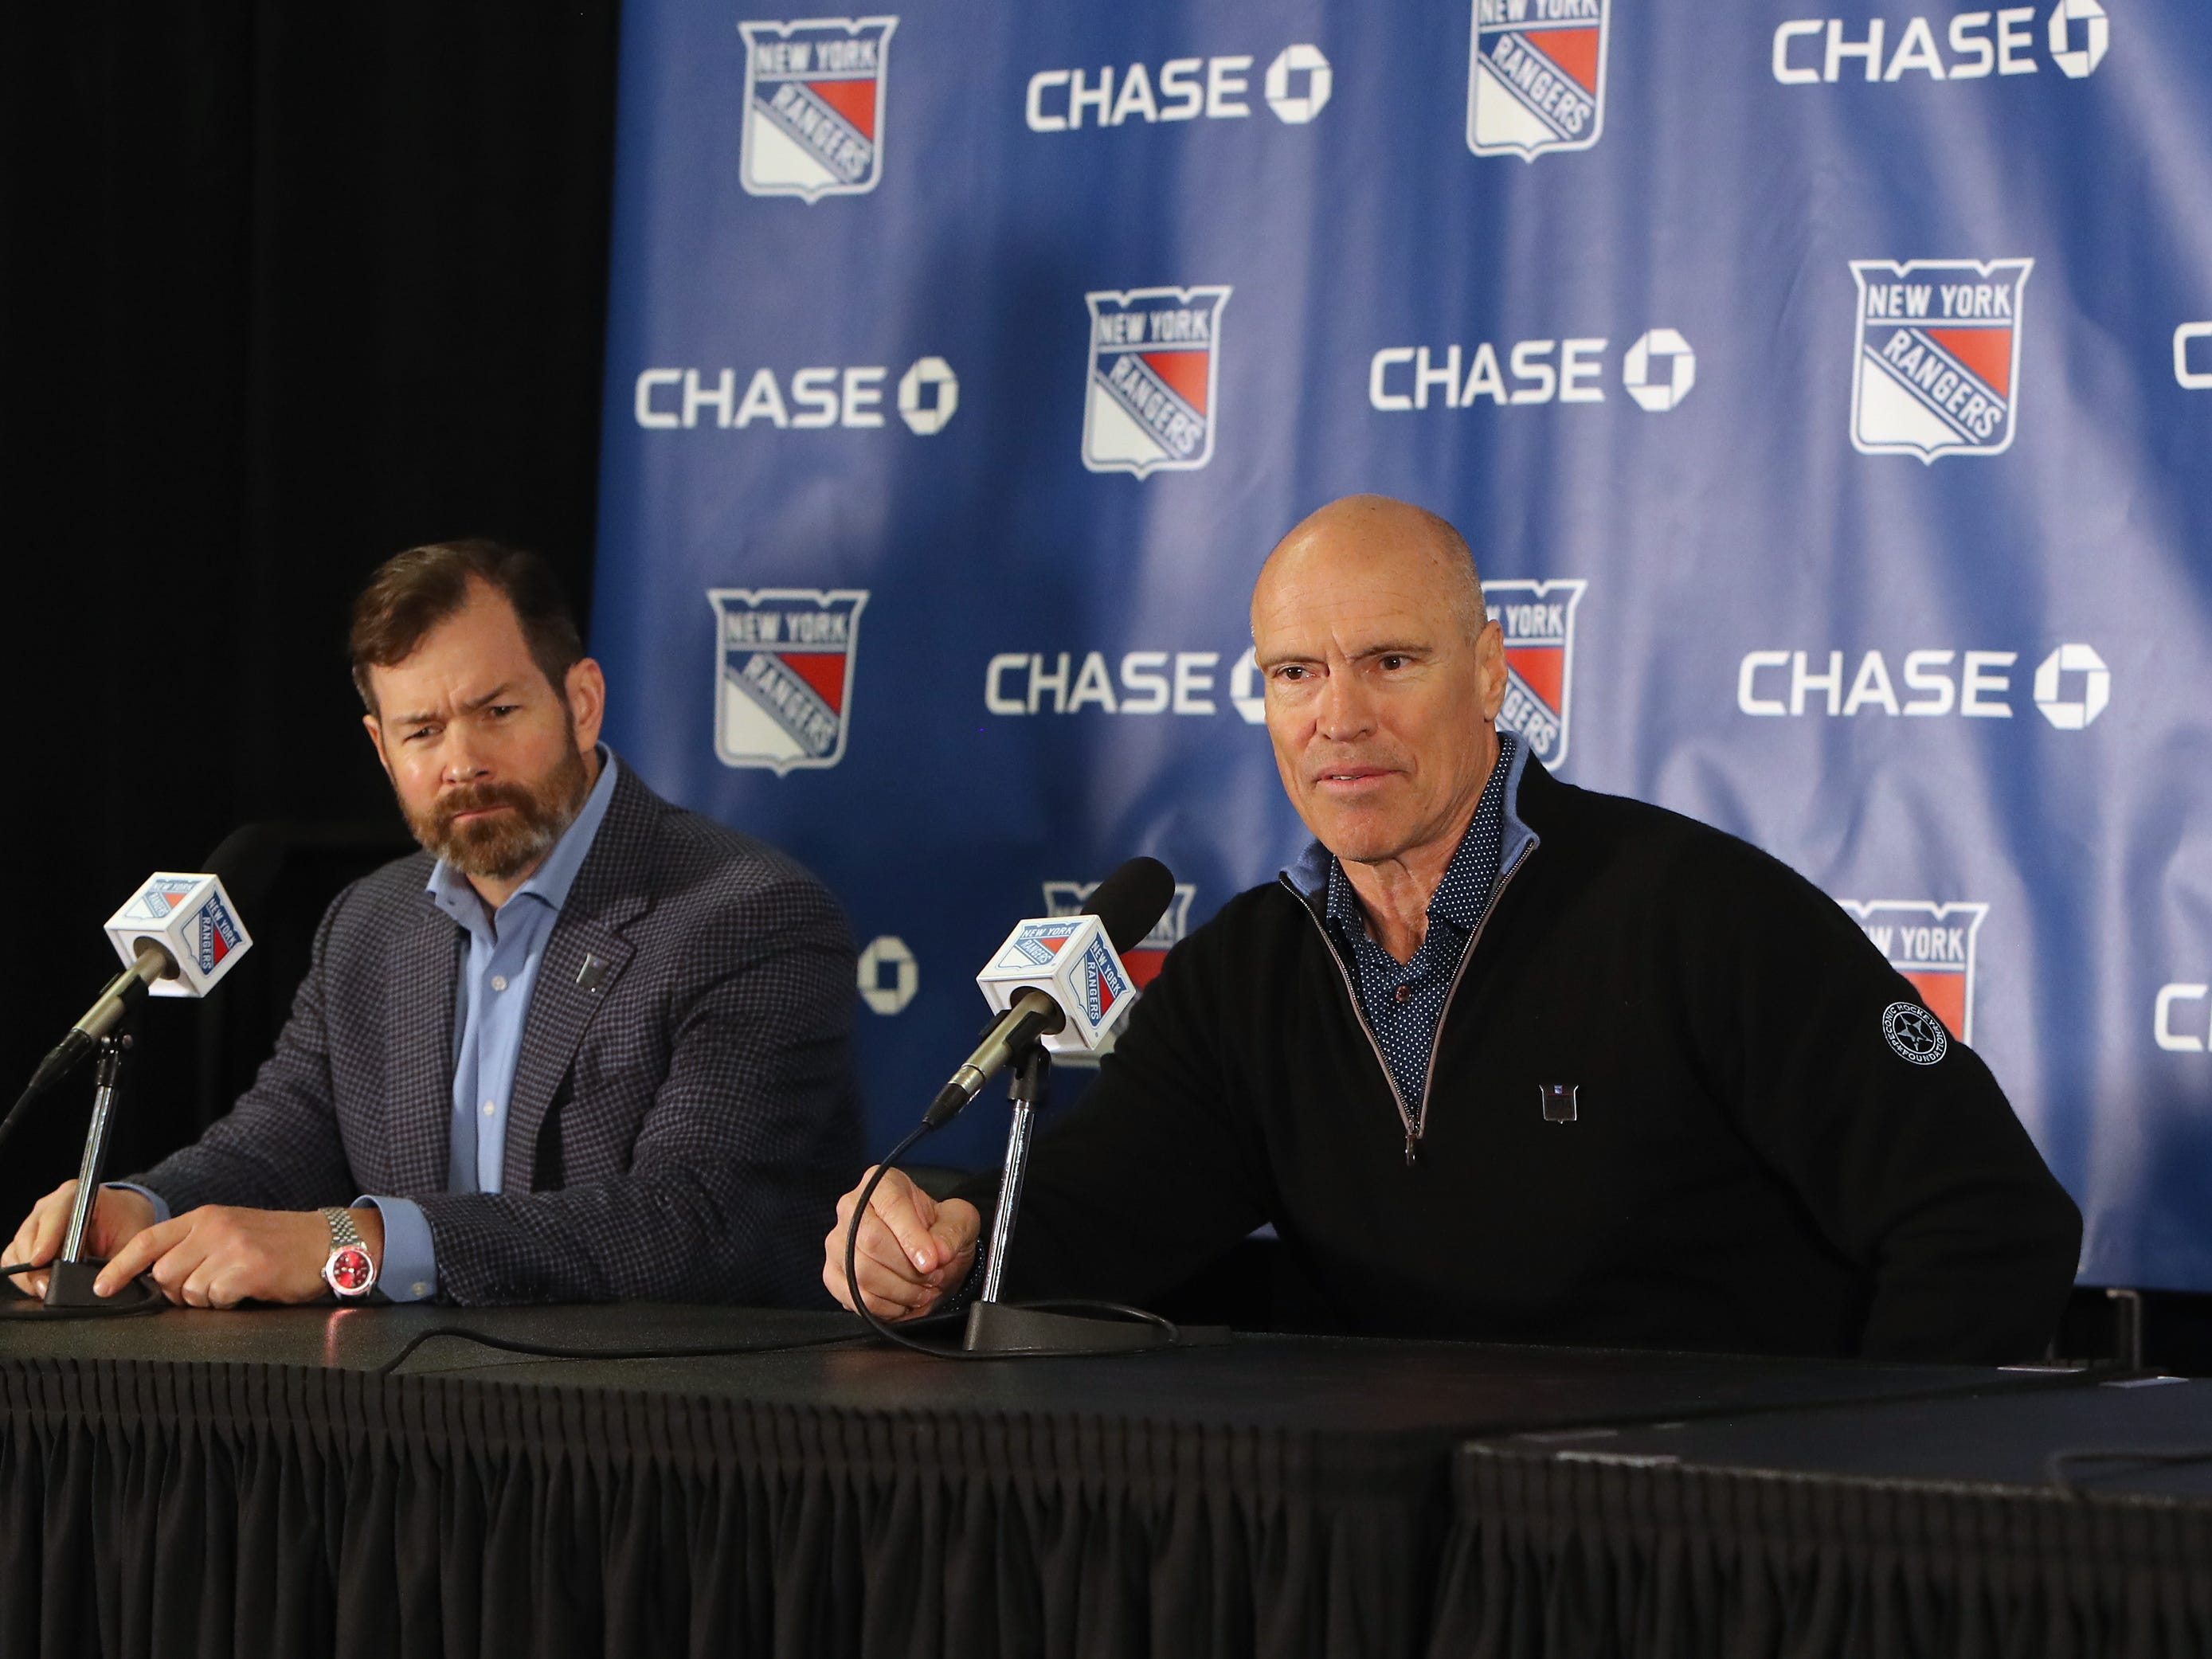 NEW YORK, NEW YORK - FEBRUARY 08: (l-r) Former New York Rangers Mike Richter and Mark Messier  speak with the media prior to the Rangers game against the Carolina Hurricanes at Madison Square Garden on February 08, 2019 in New York City. The Rangers were celebrating the 25th anniversary of their Stanley Cup win in 1994.